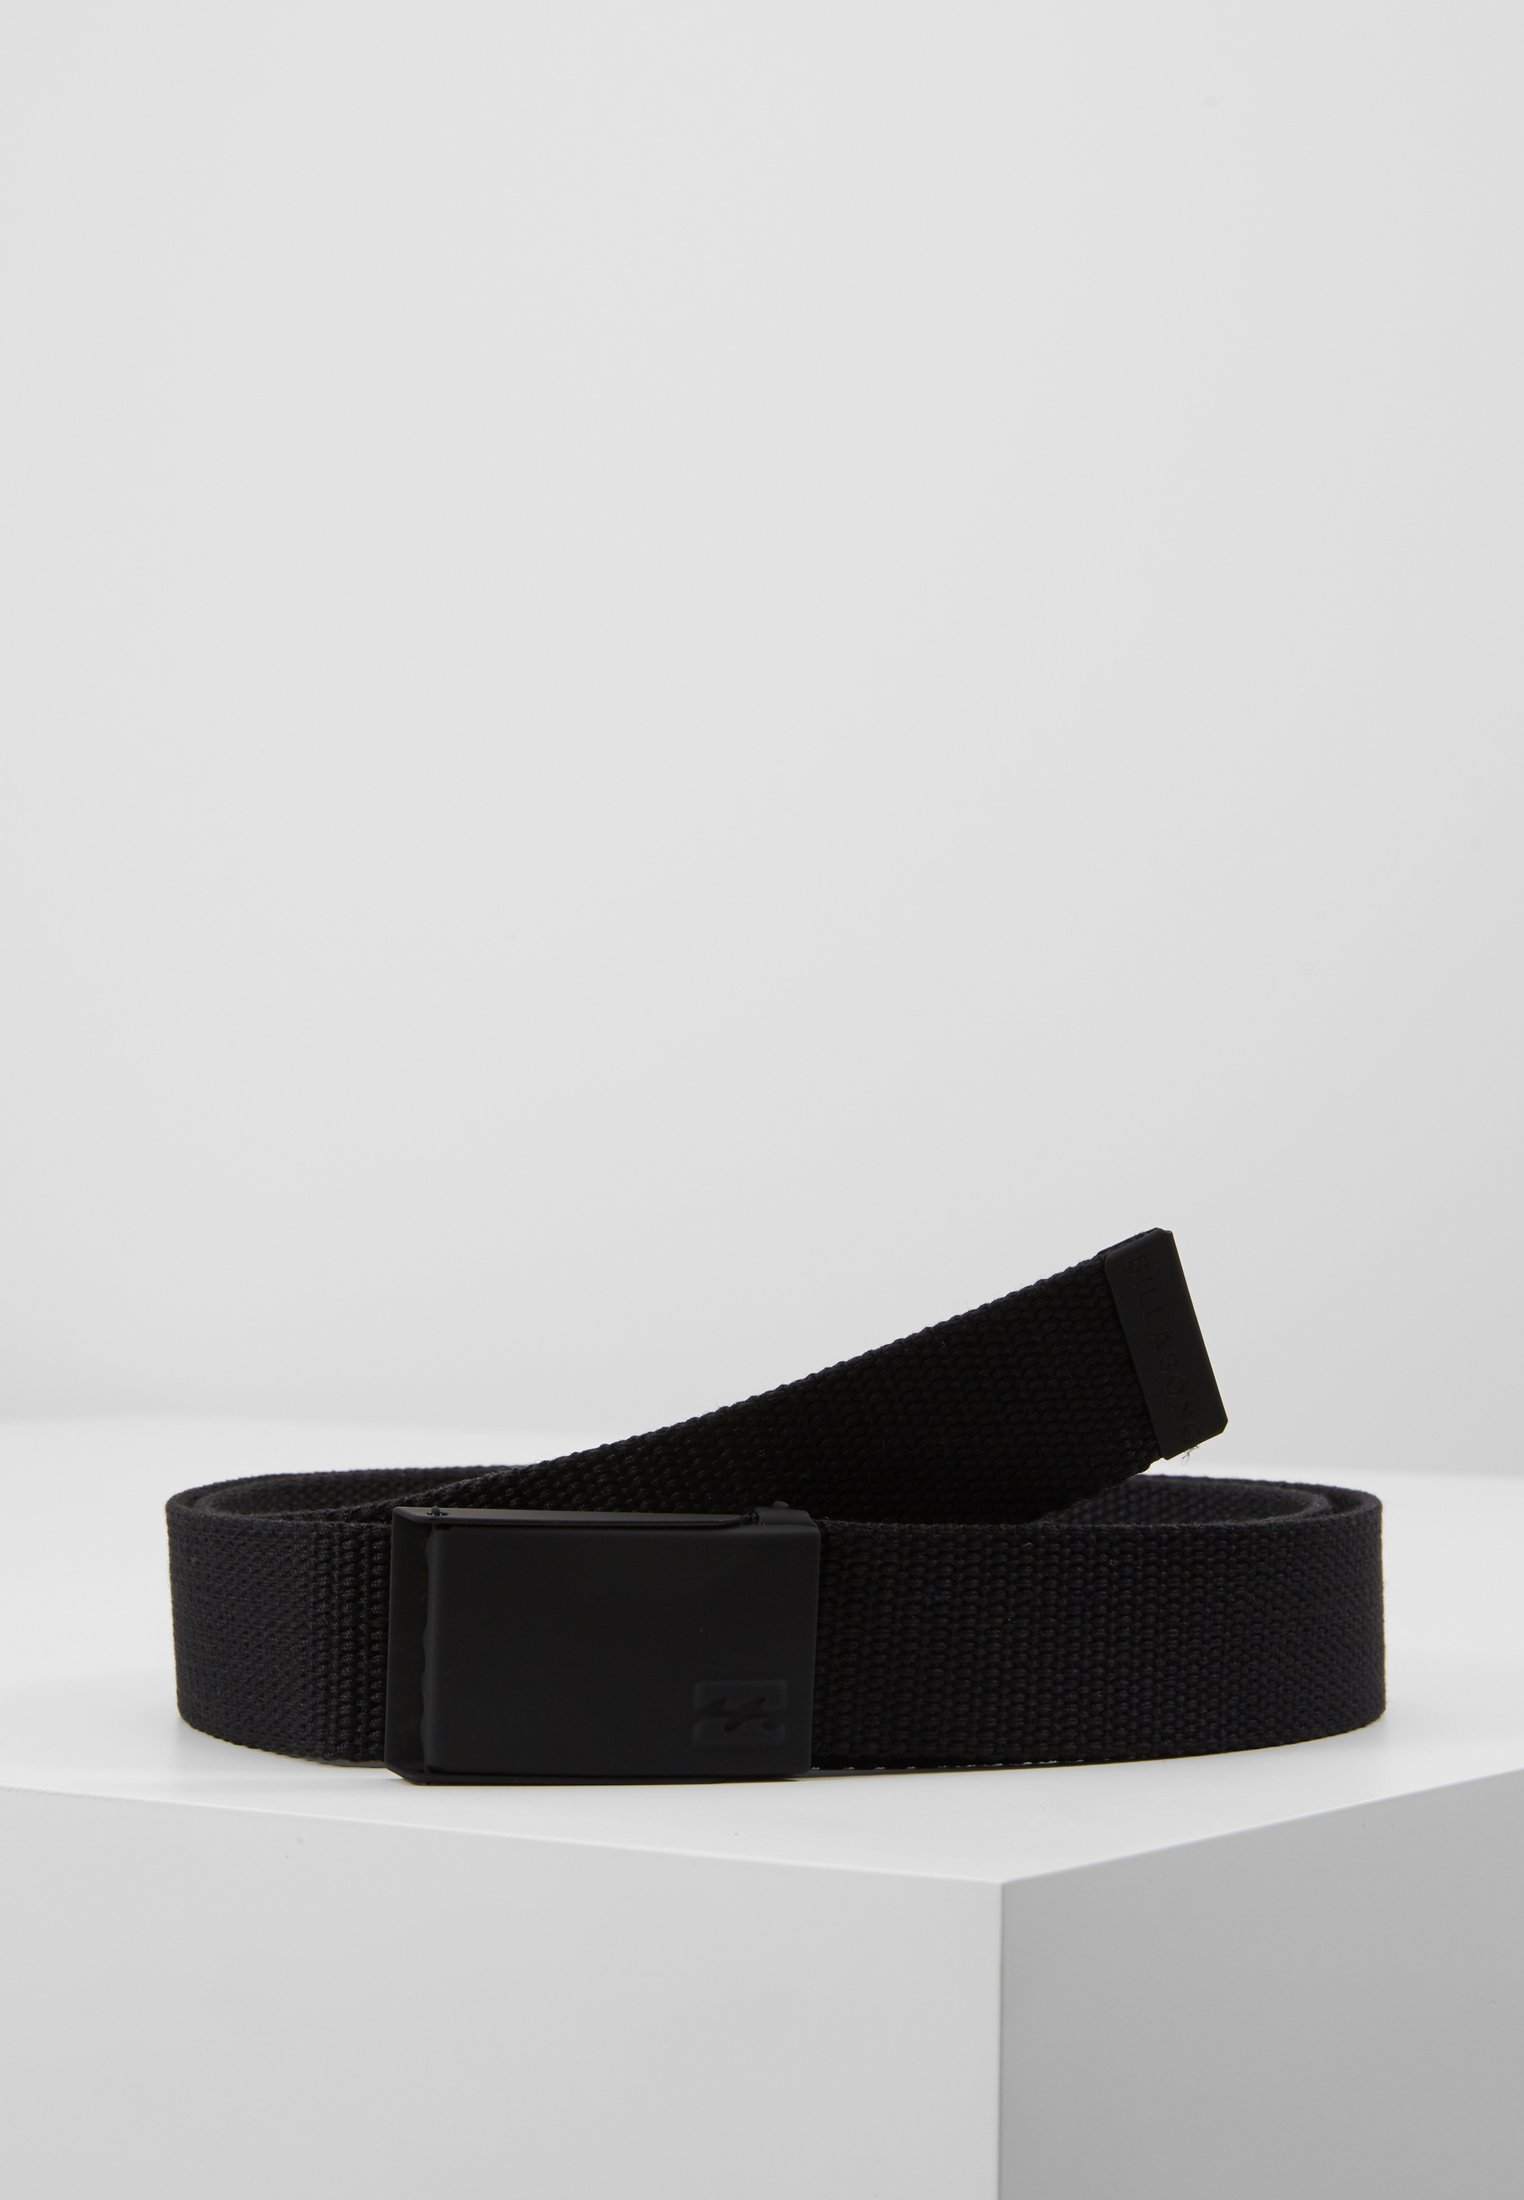 Black Billabong Billabong Black CogCeinture CogCeinture Black CogCeinture Billabong Billabong ZukPXOi